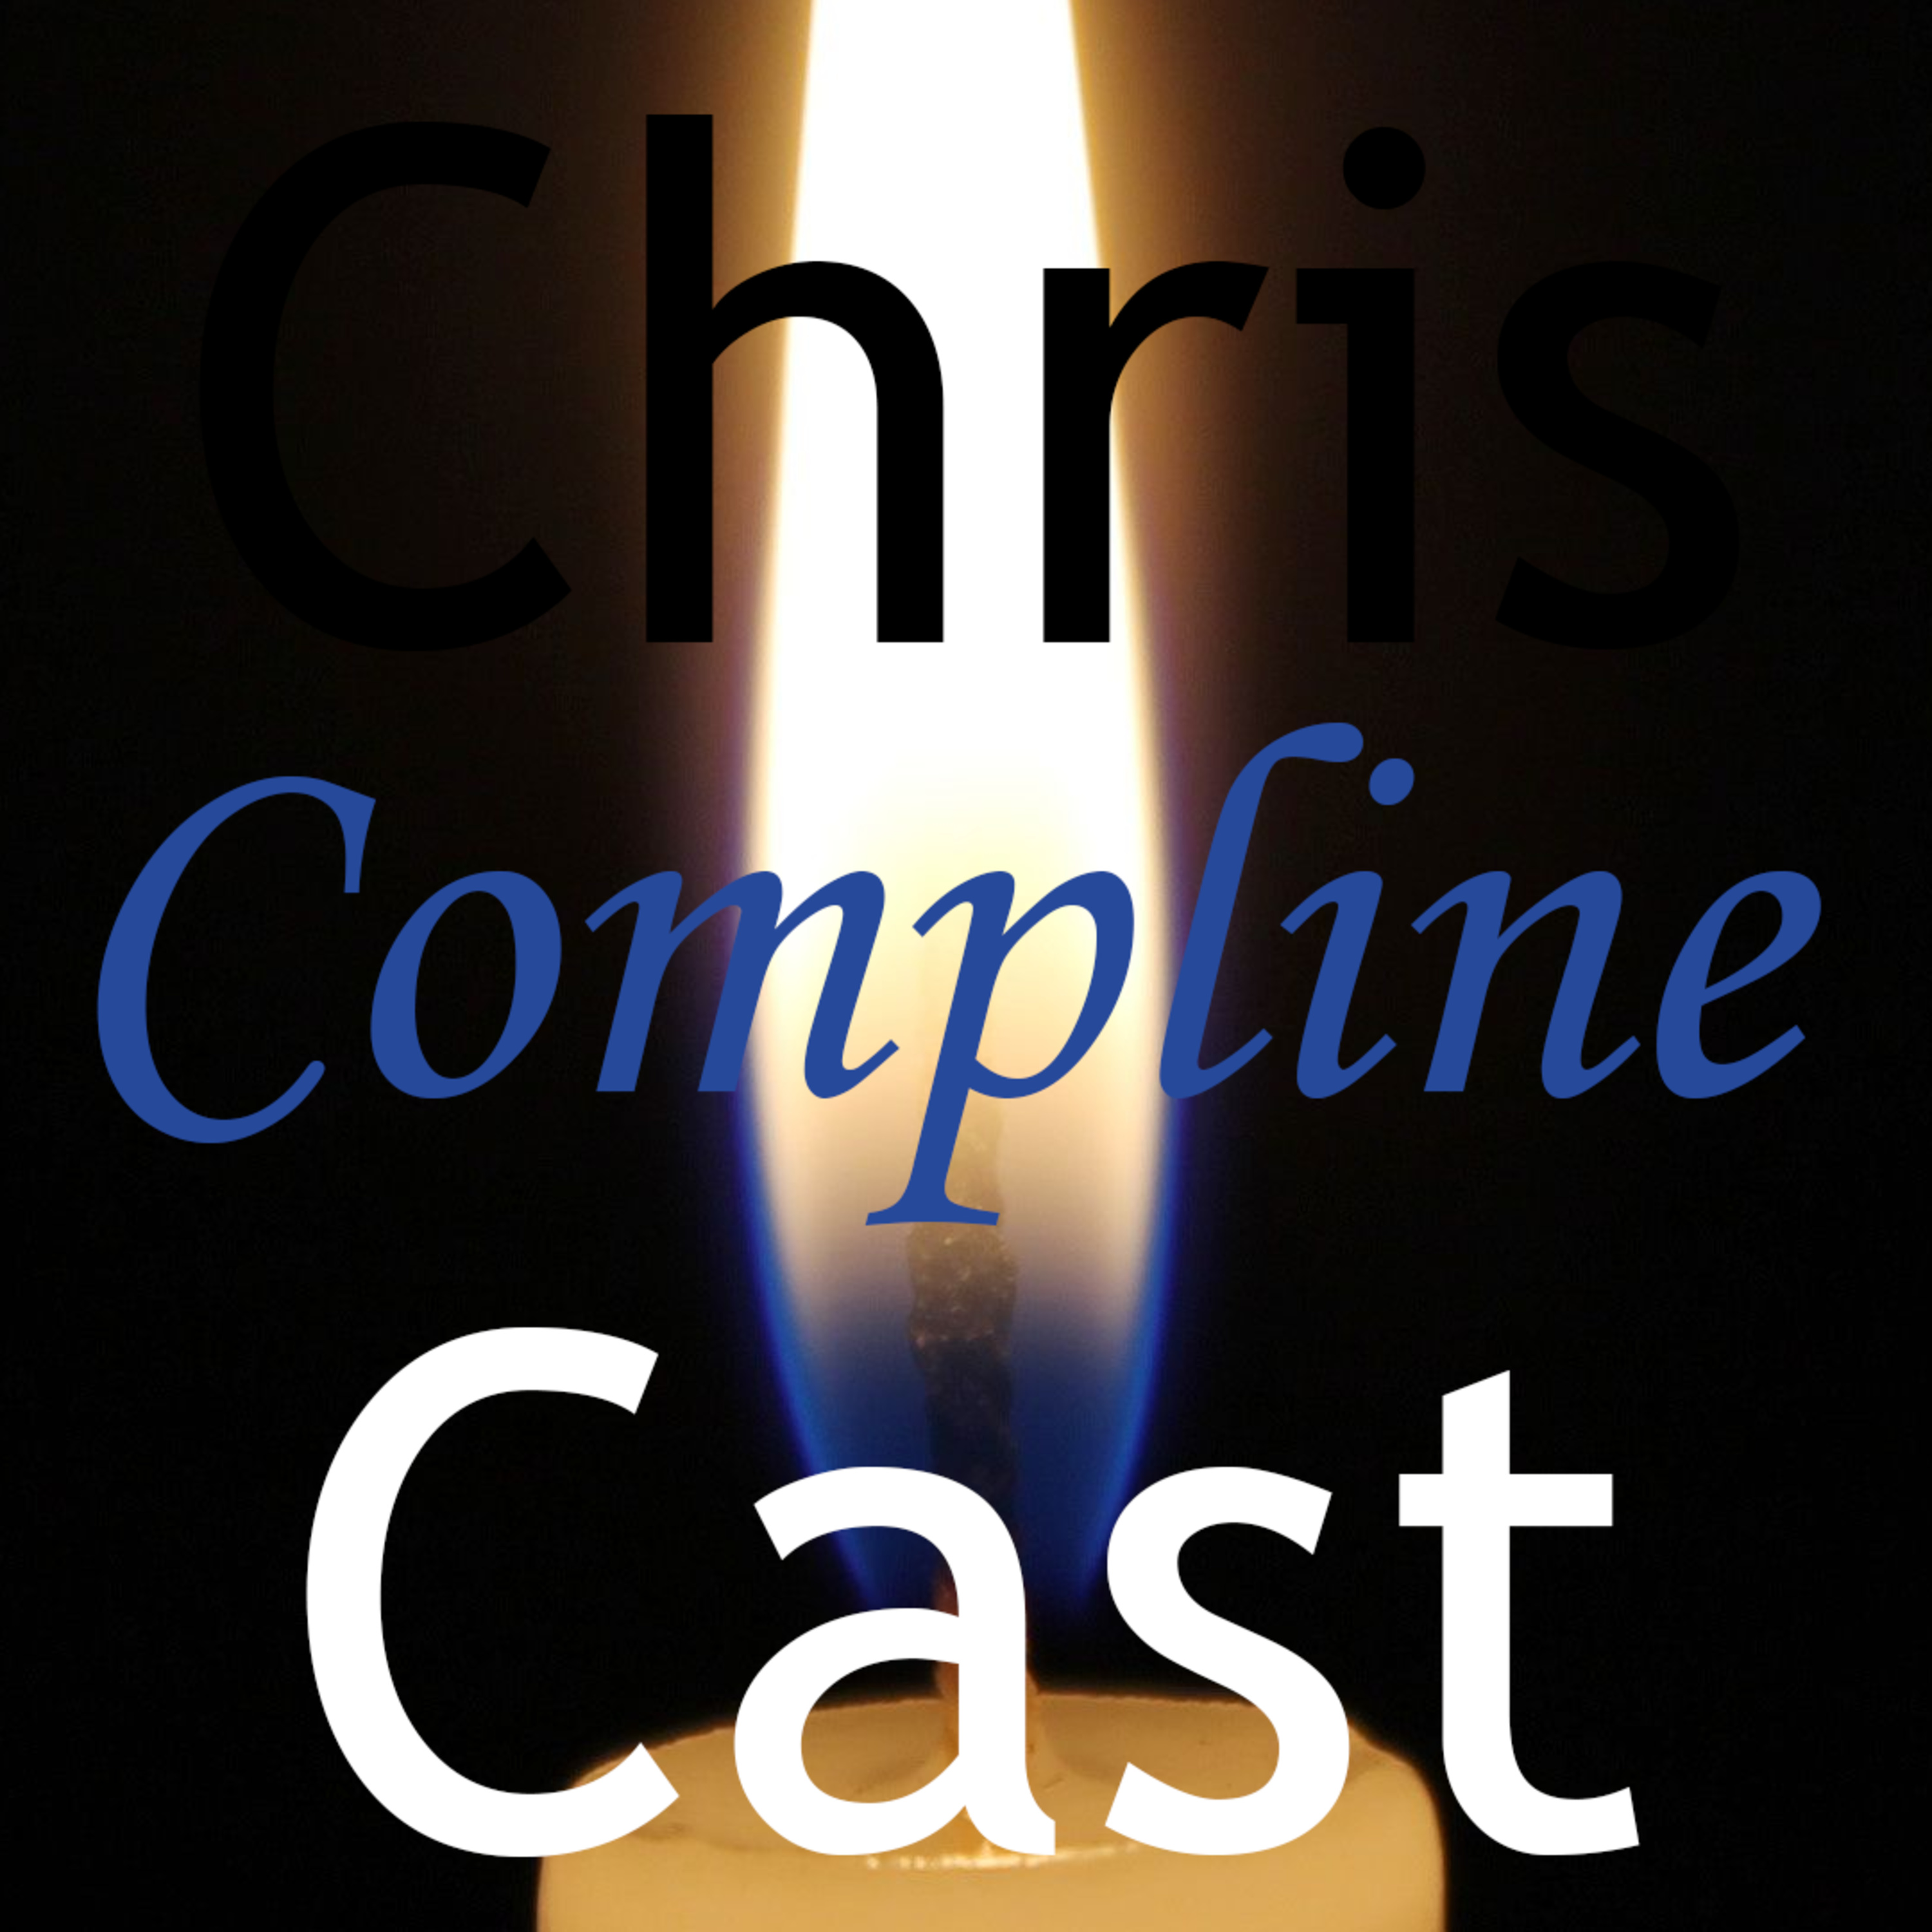 ChrisCast Episode 9: Mindfulness Meditation: Matins, Lauds, Vespers, and Compline